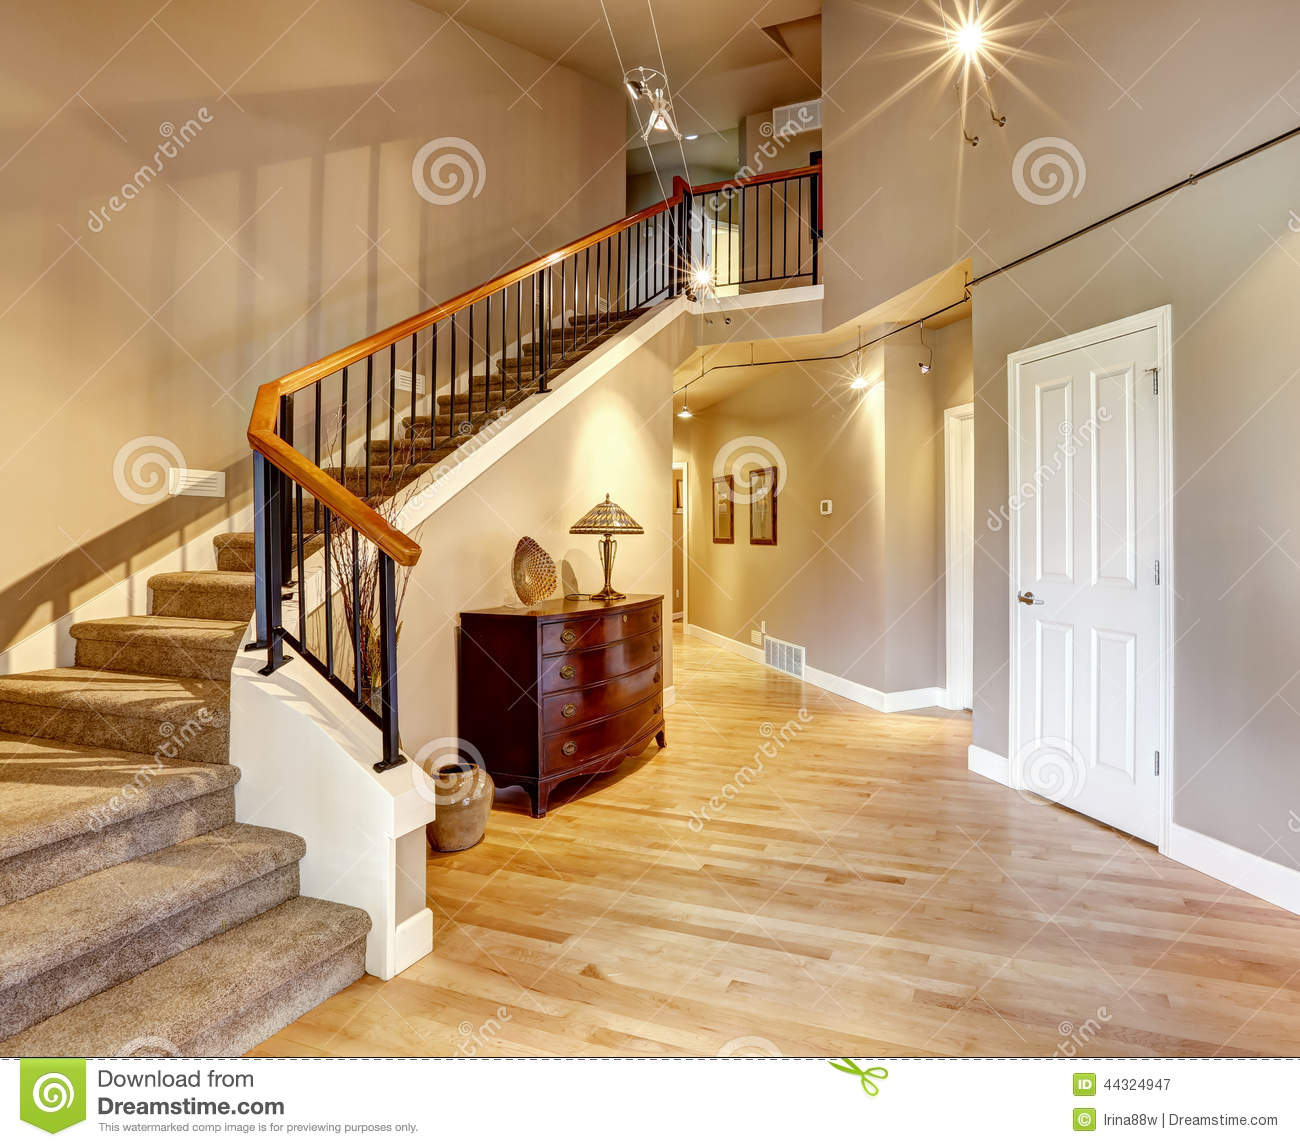 Hallway With Staircase In Luxury House Stock Photo Image